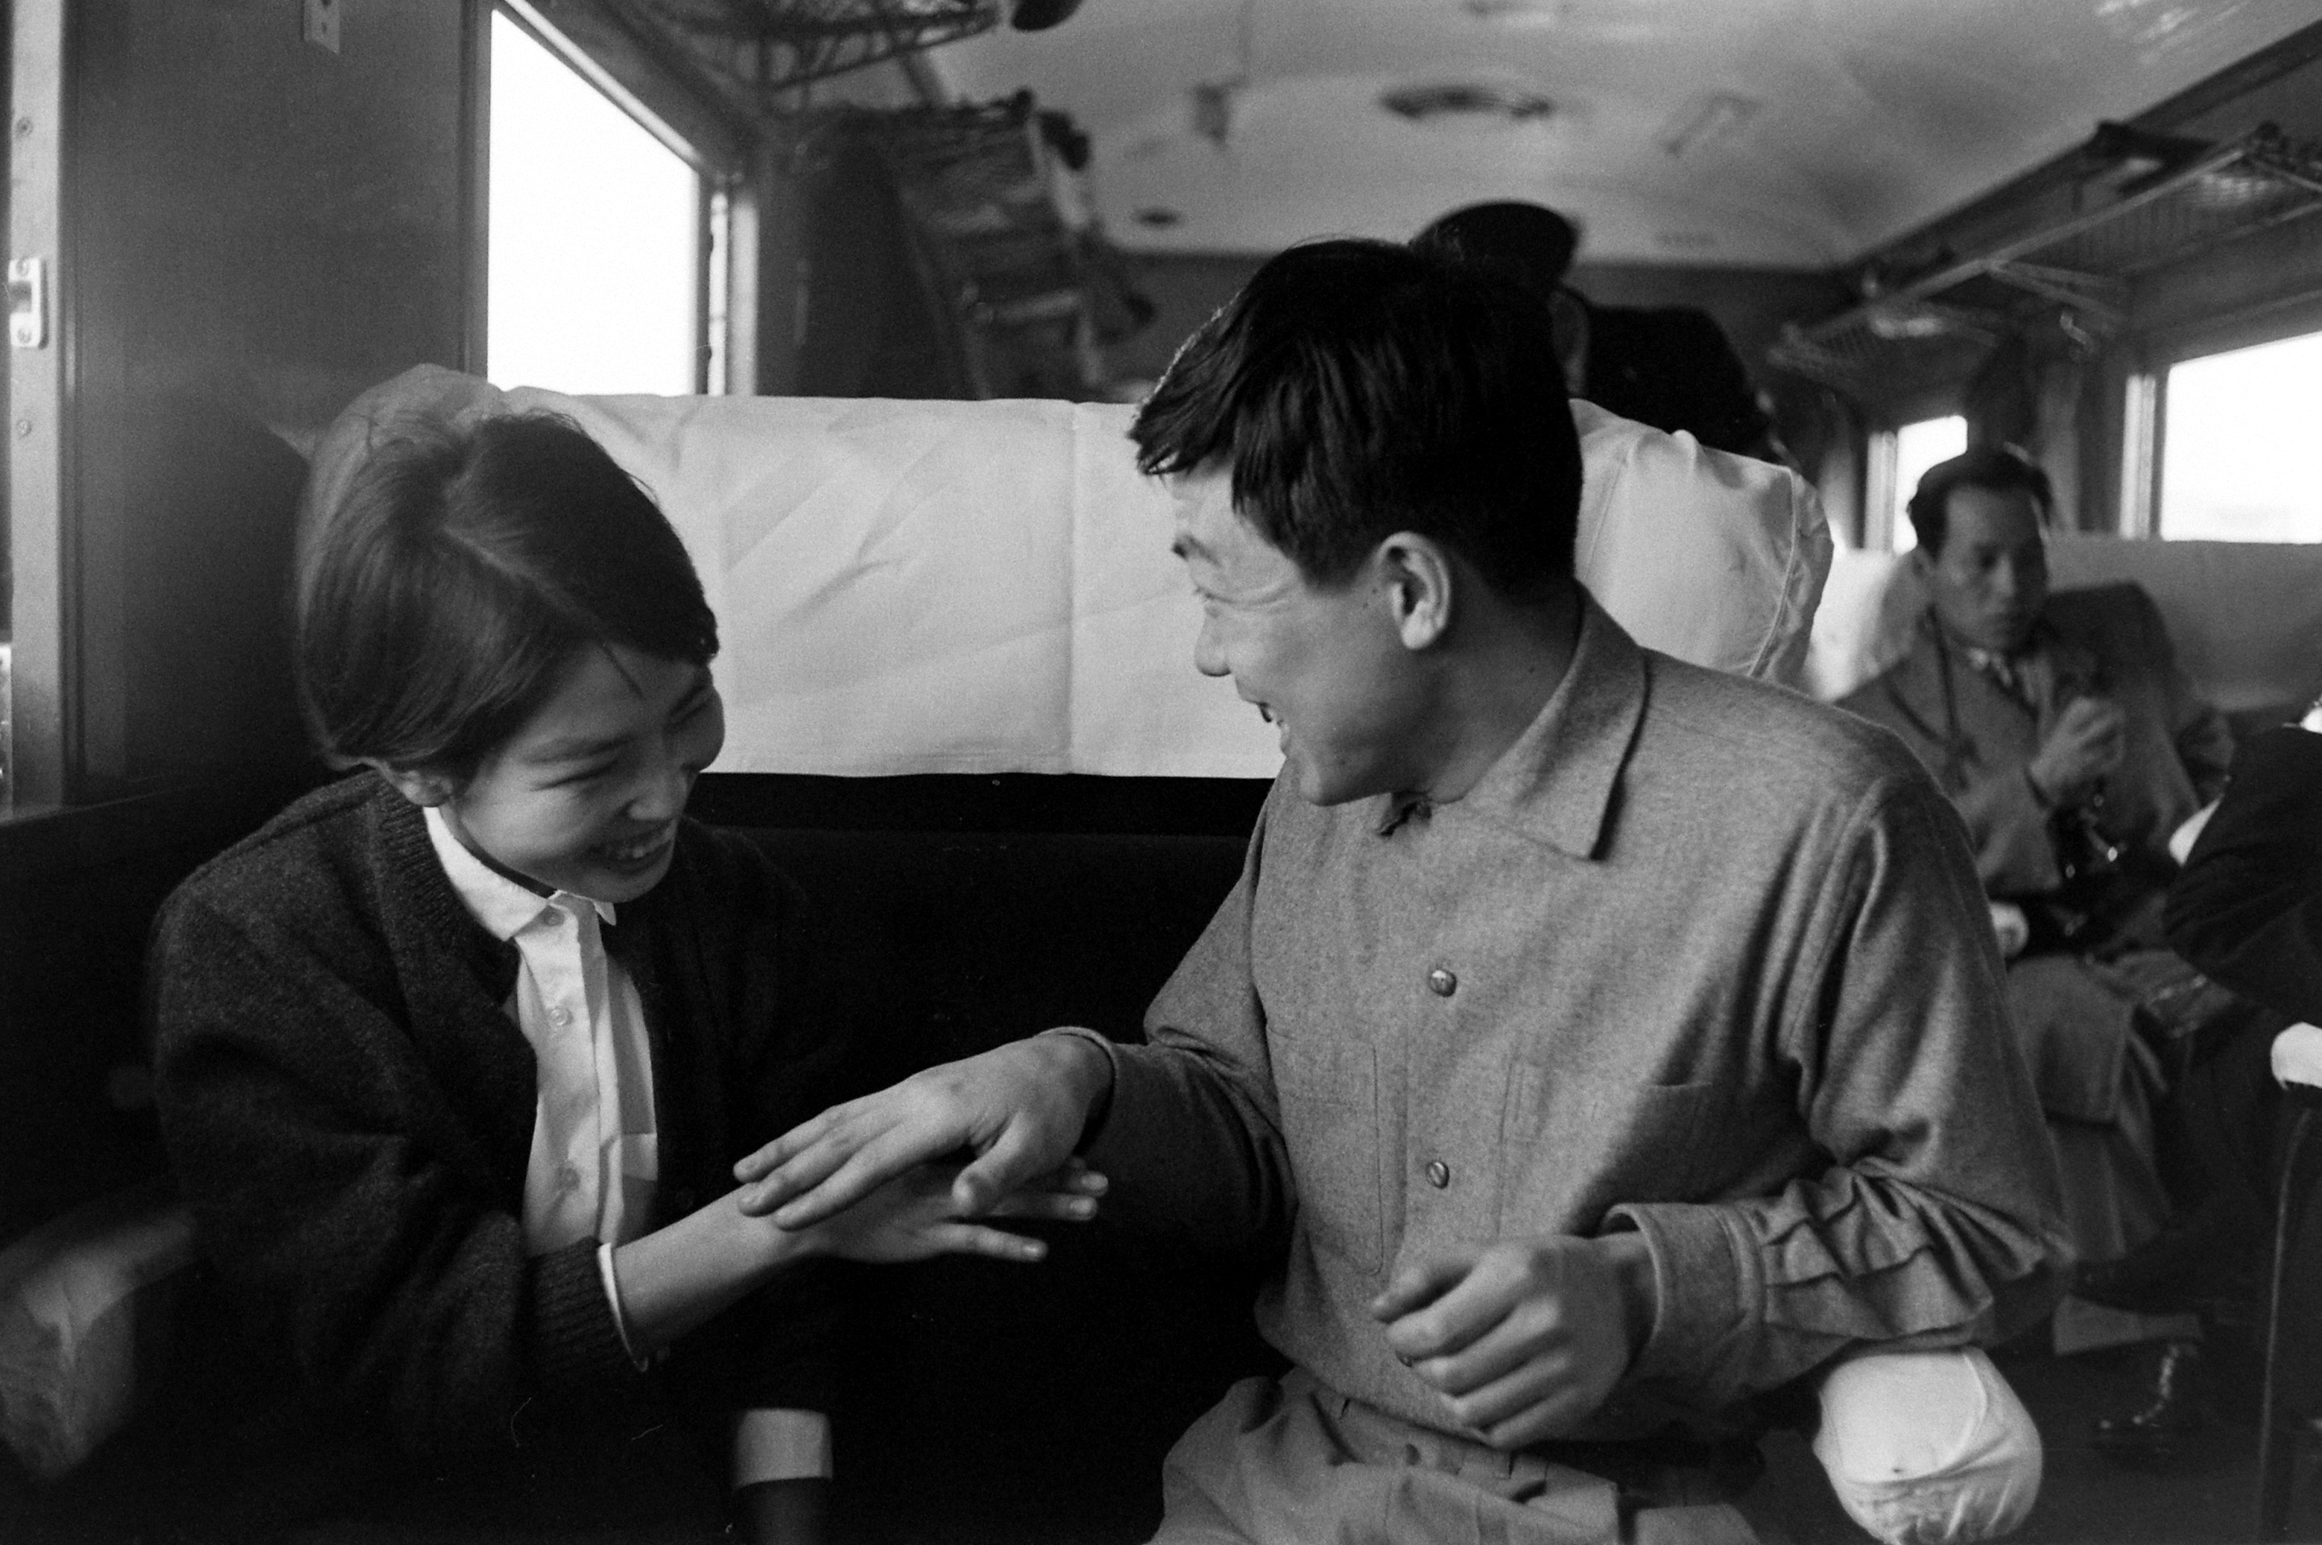 Chiyoko Inami, left, and her boyfriend, Akiksuke Tsutsui, playing a game on a train headed to Kyoto to meet Tsutsui's family.  March, 1959.